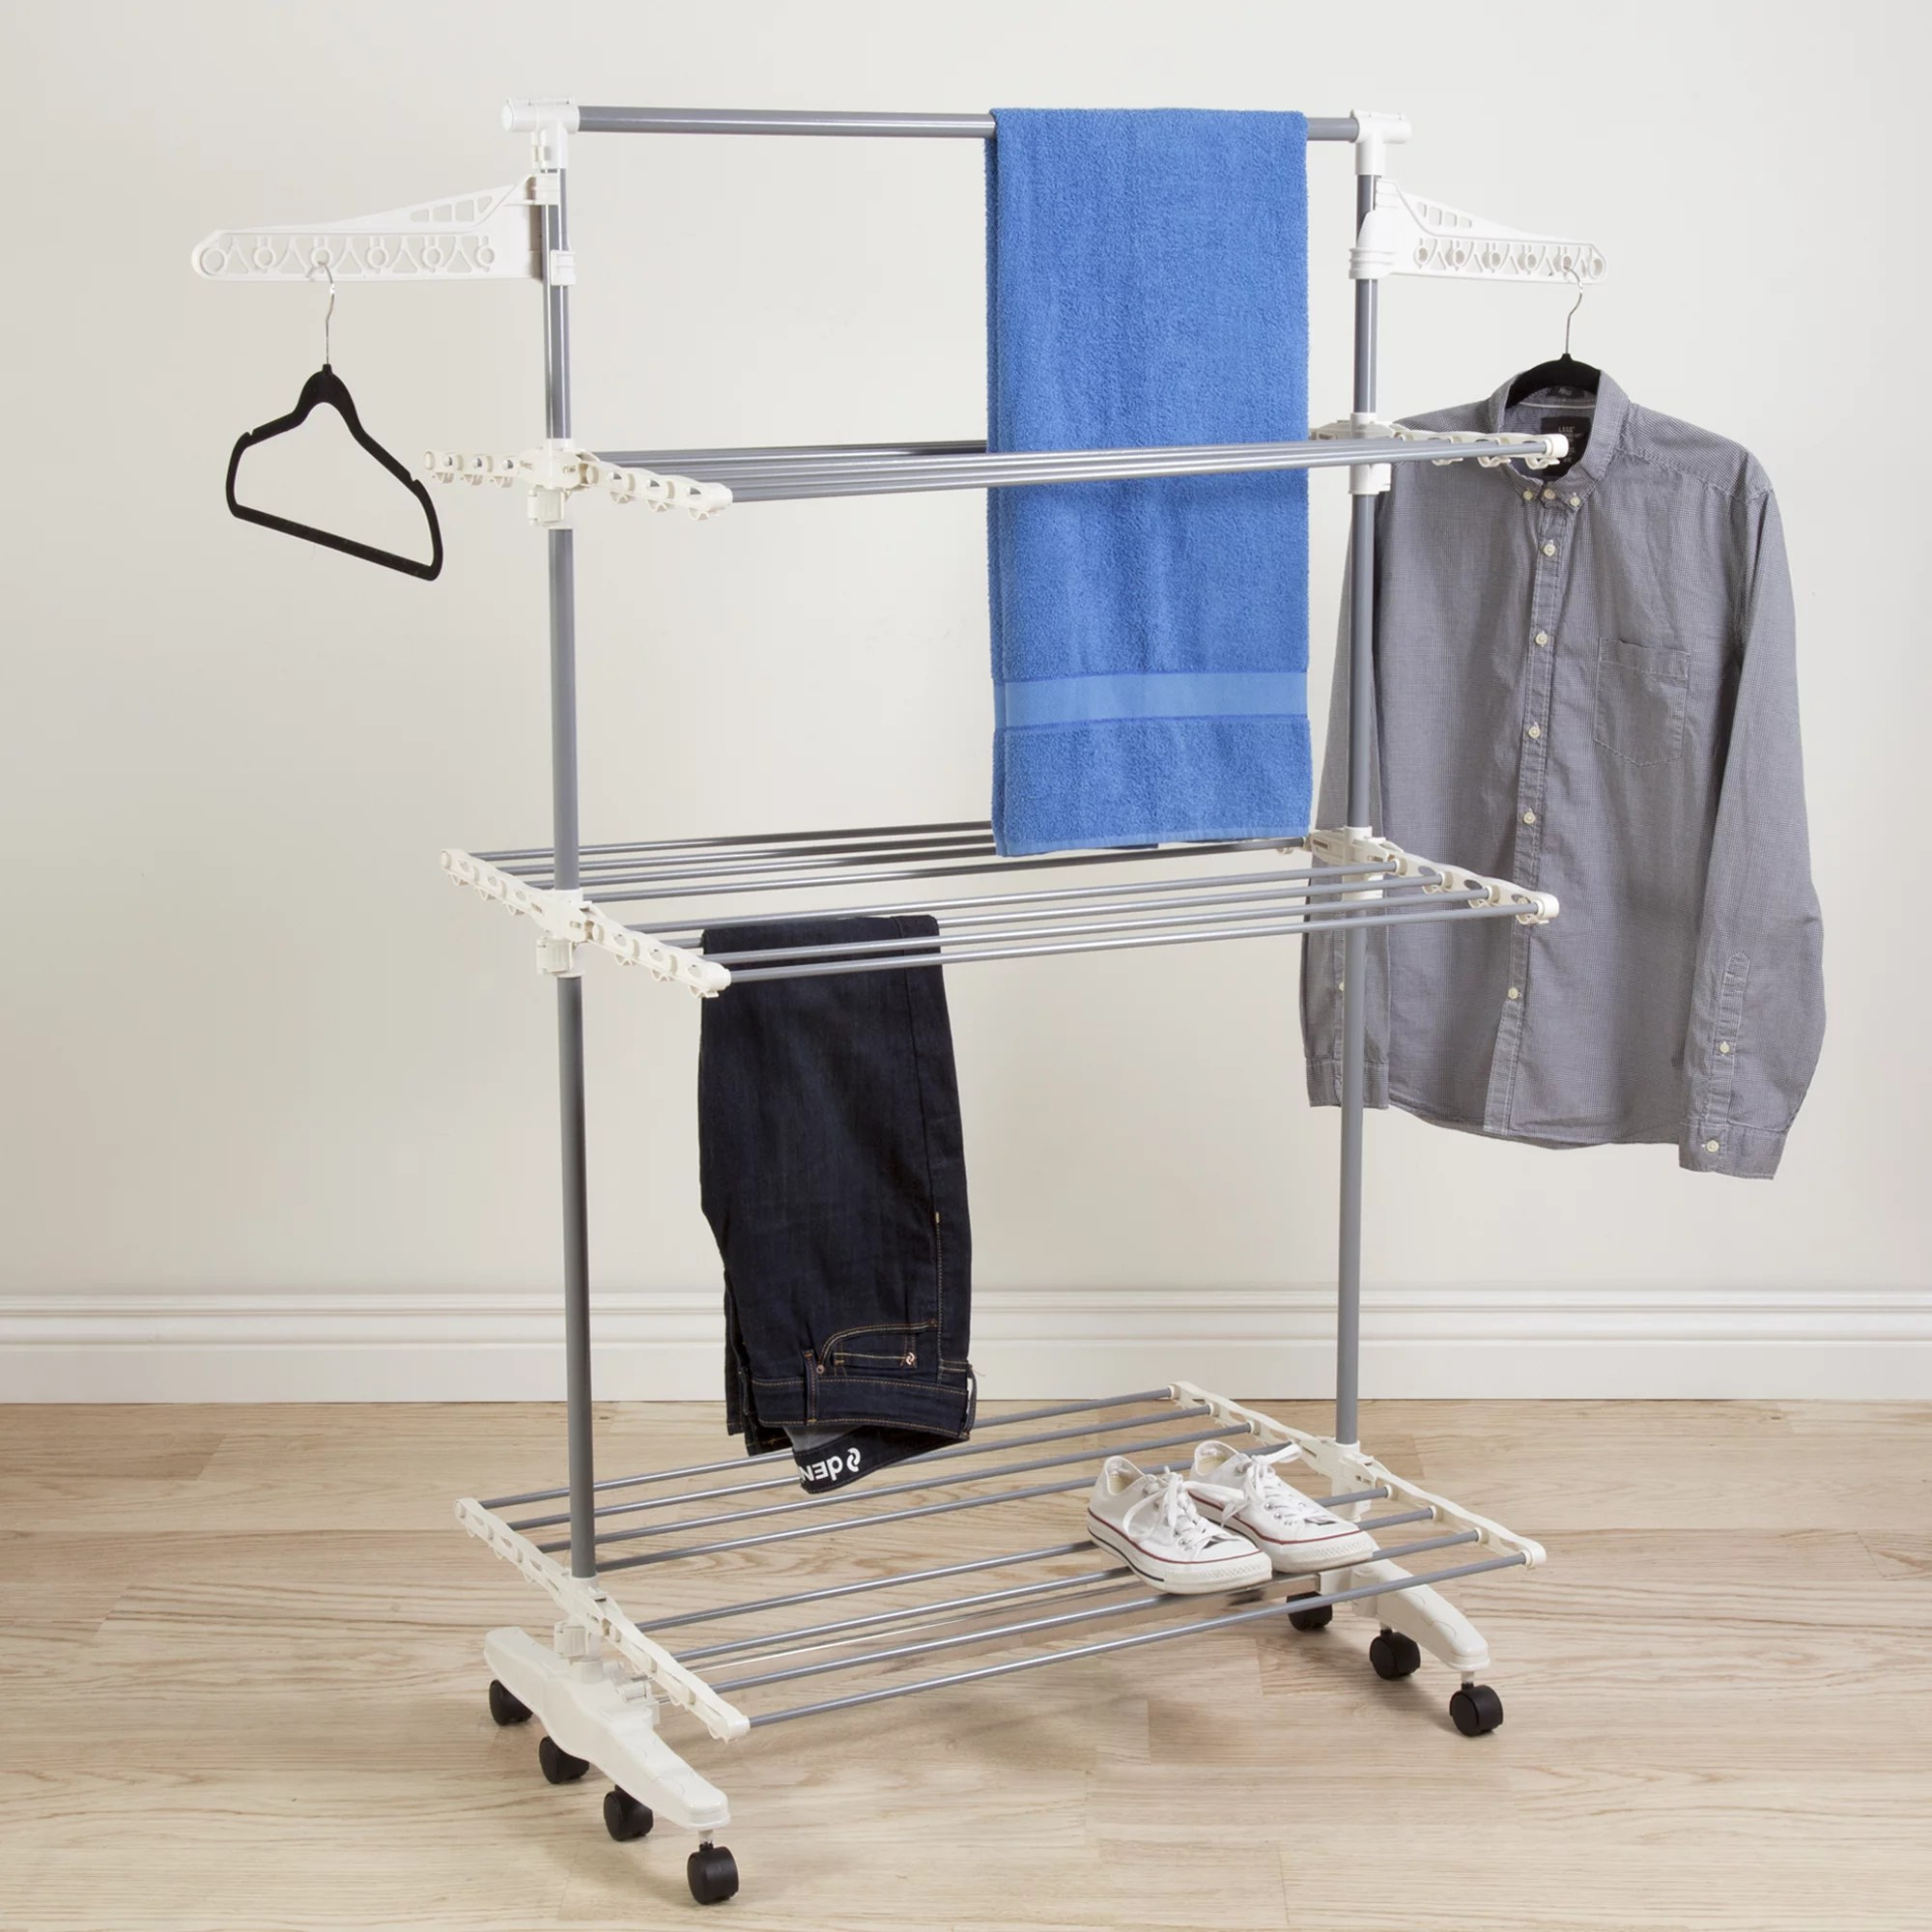 mainstay 6 arm adjustable drying rack